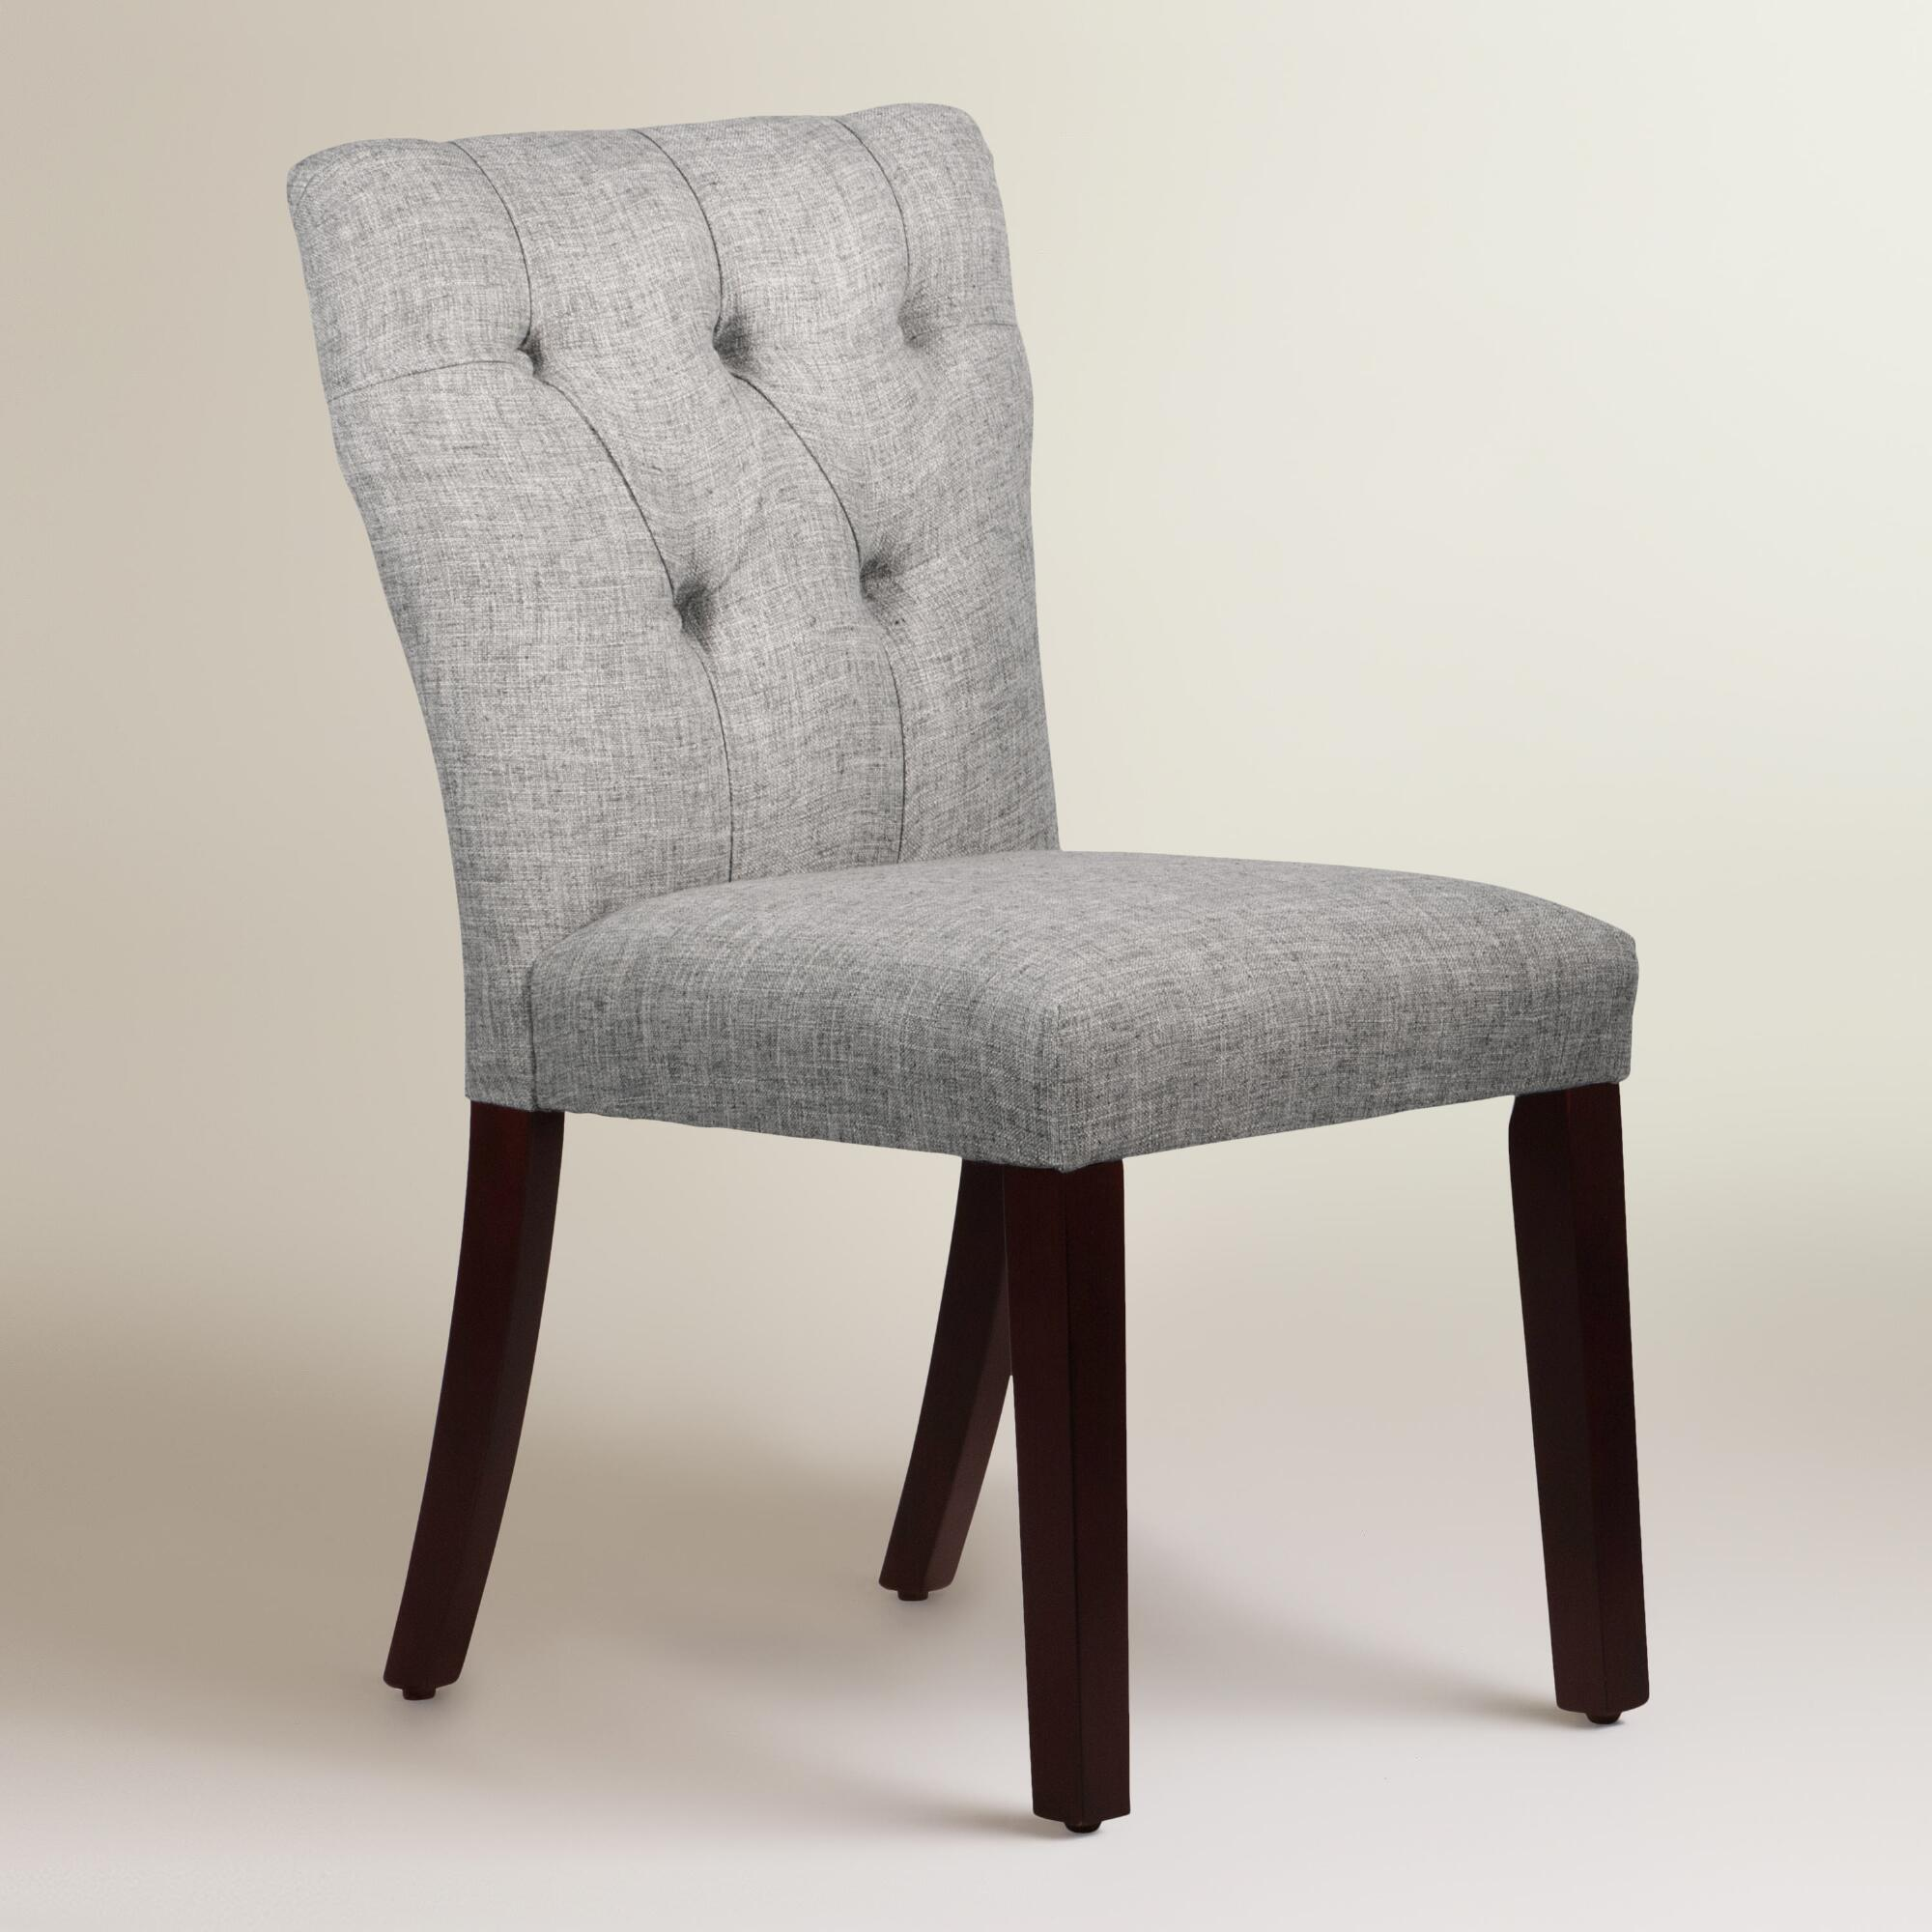 Linen blend tufted gabie dining chair world market - Tufted dining room chairs ...